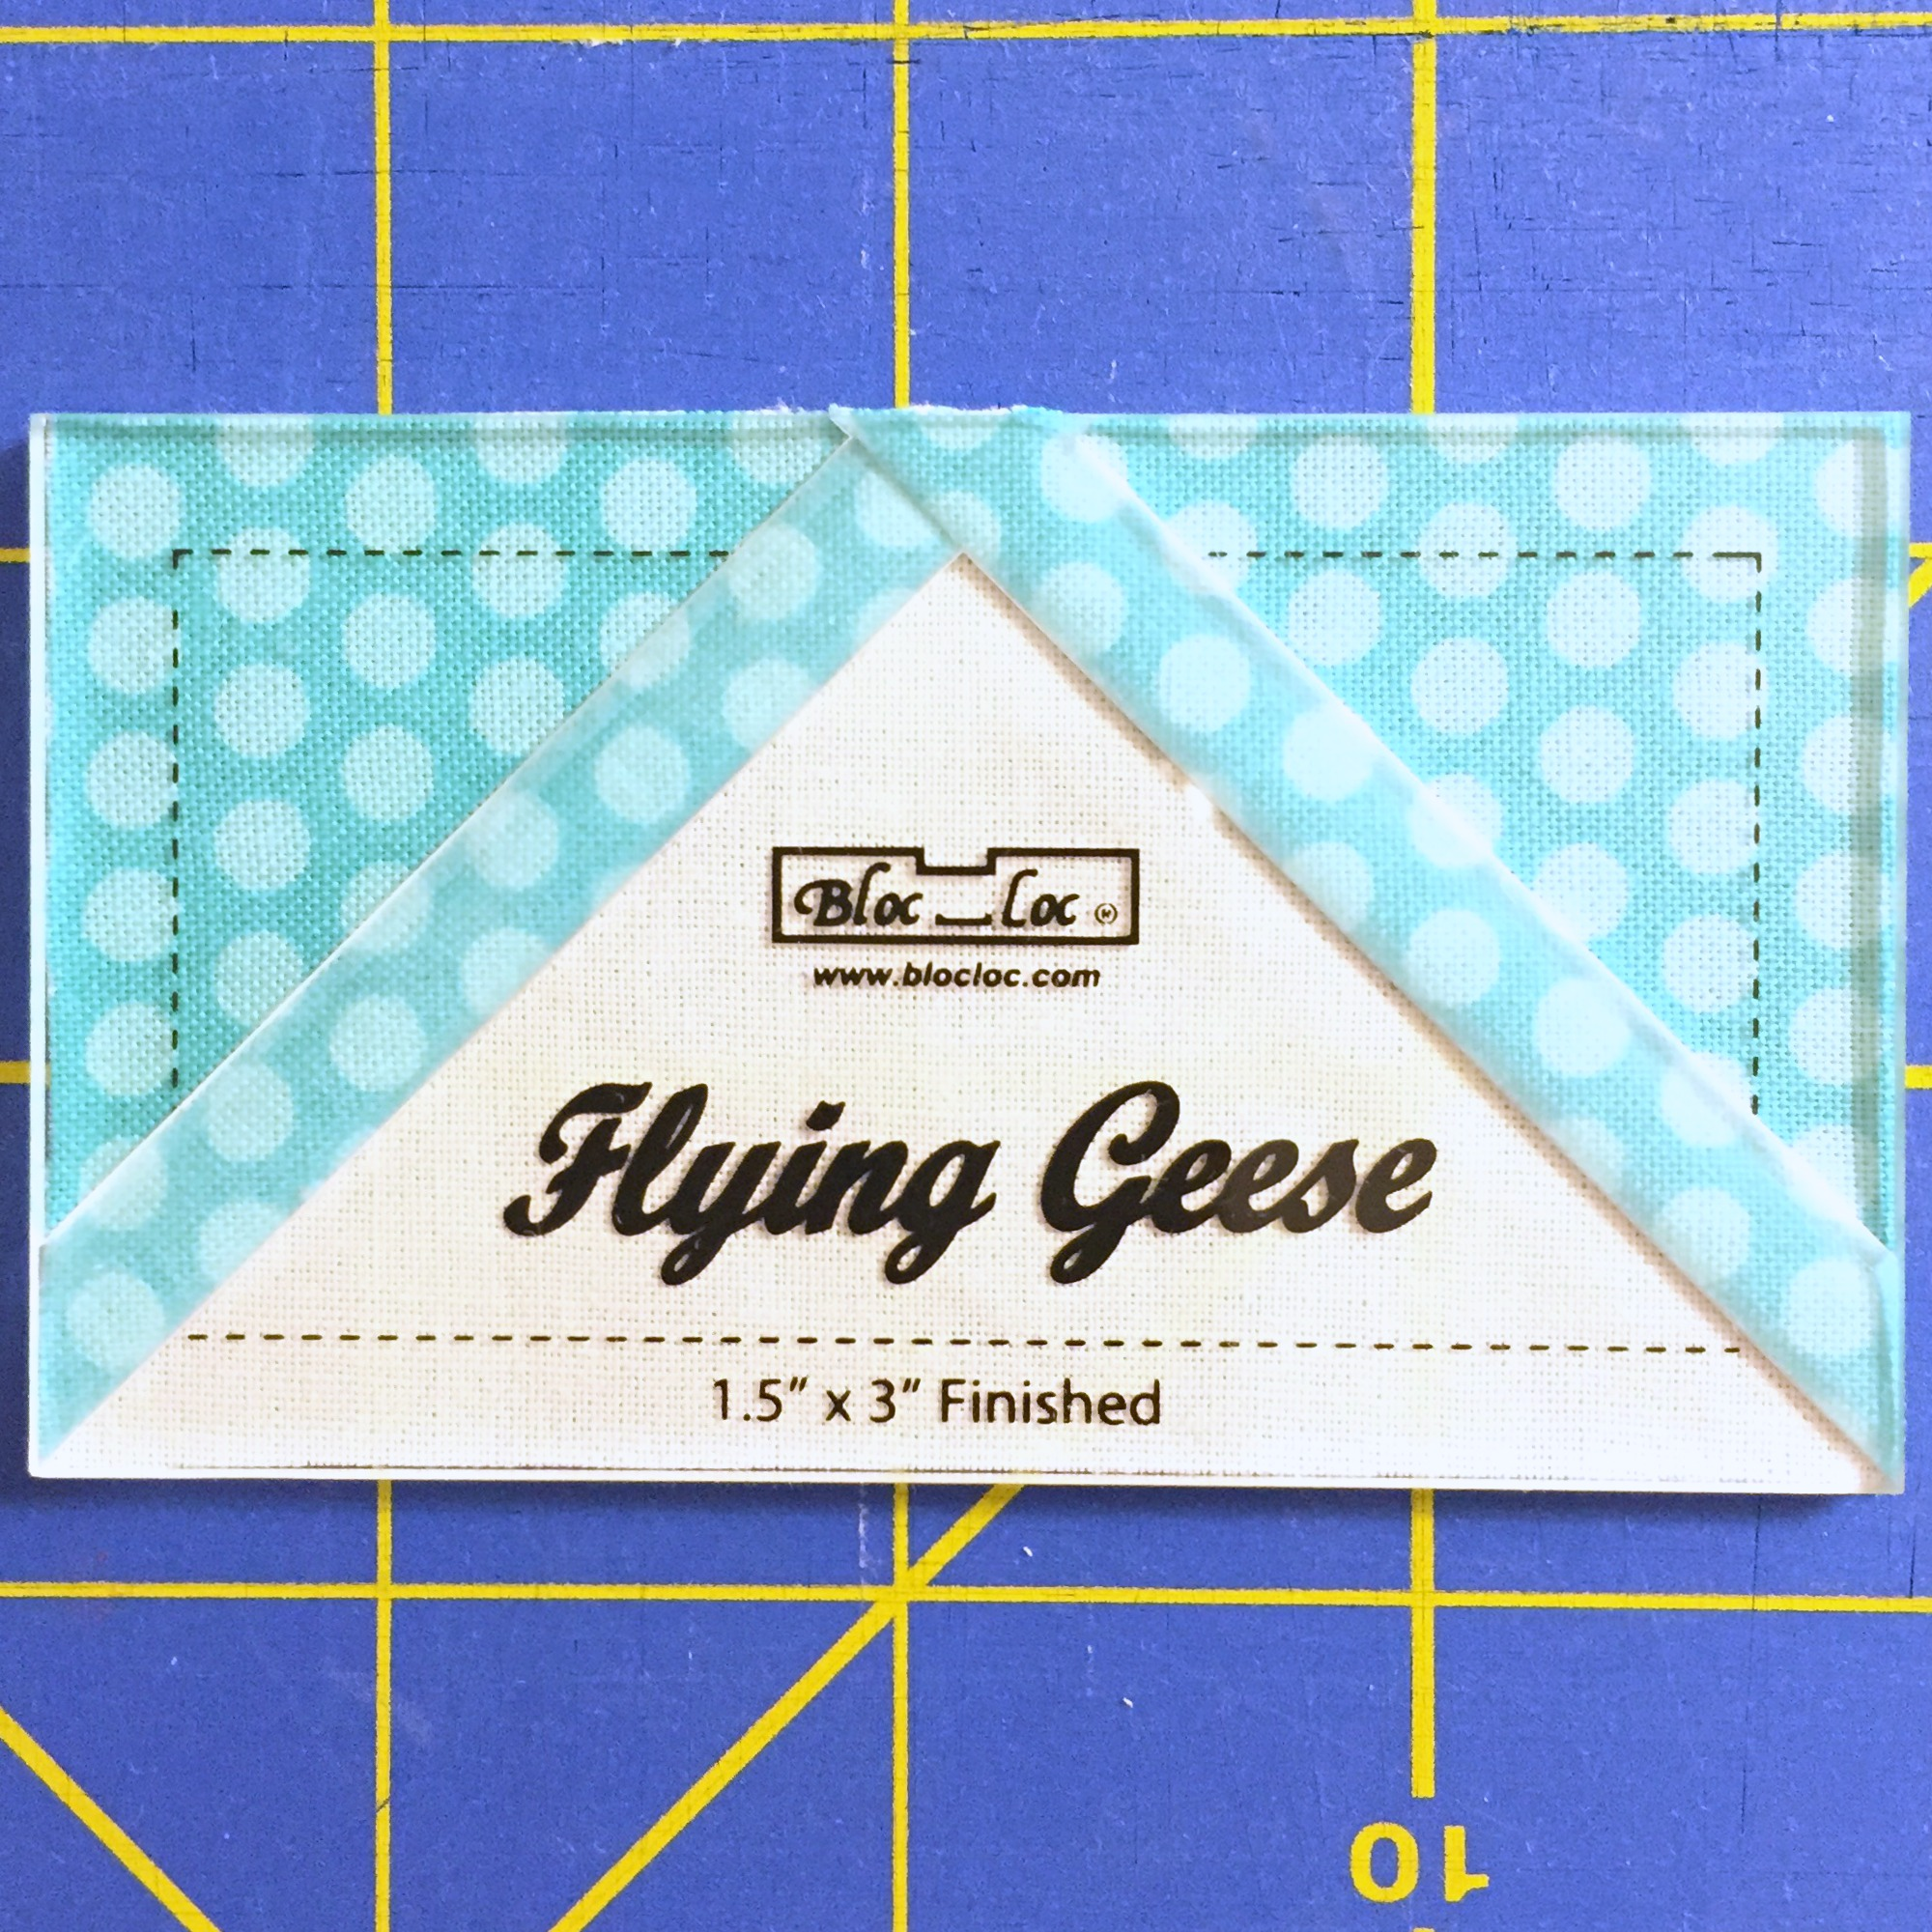 Flying Goose Trimmed with the Bloc Loc Ruler